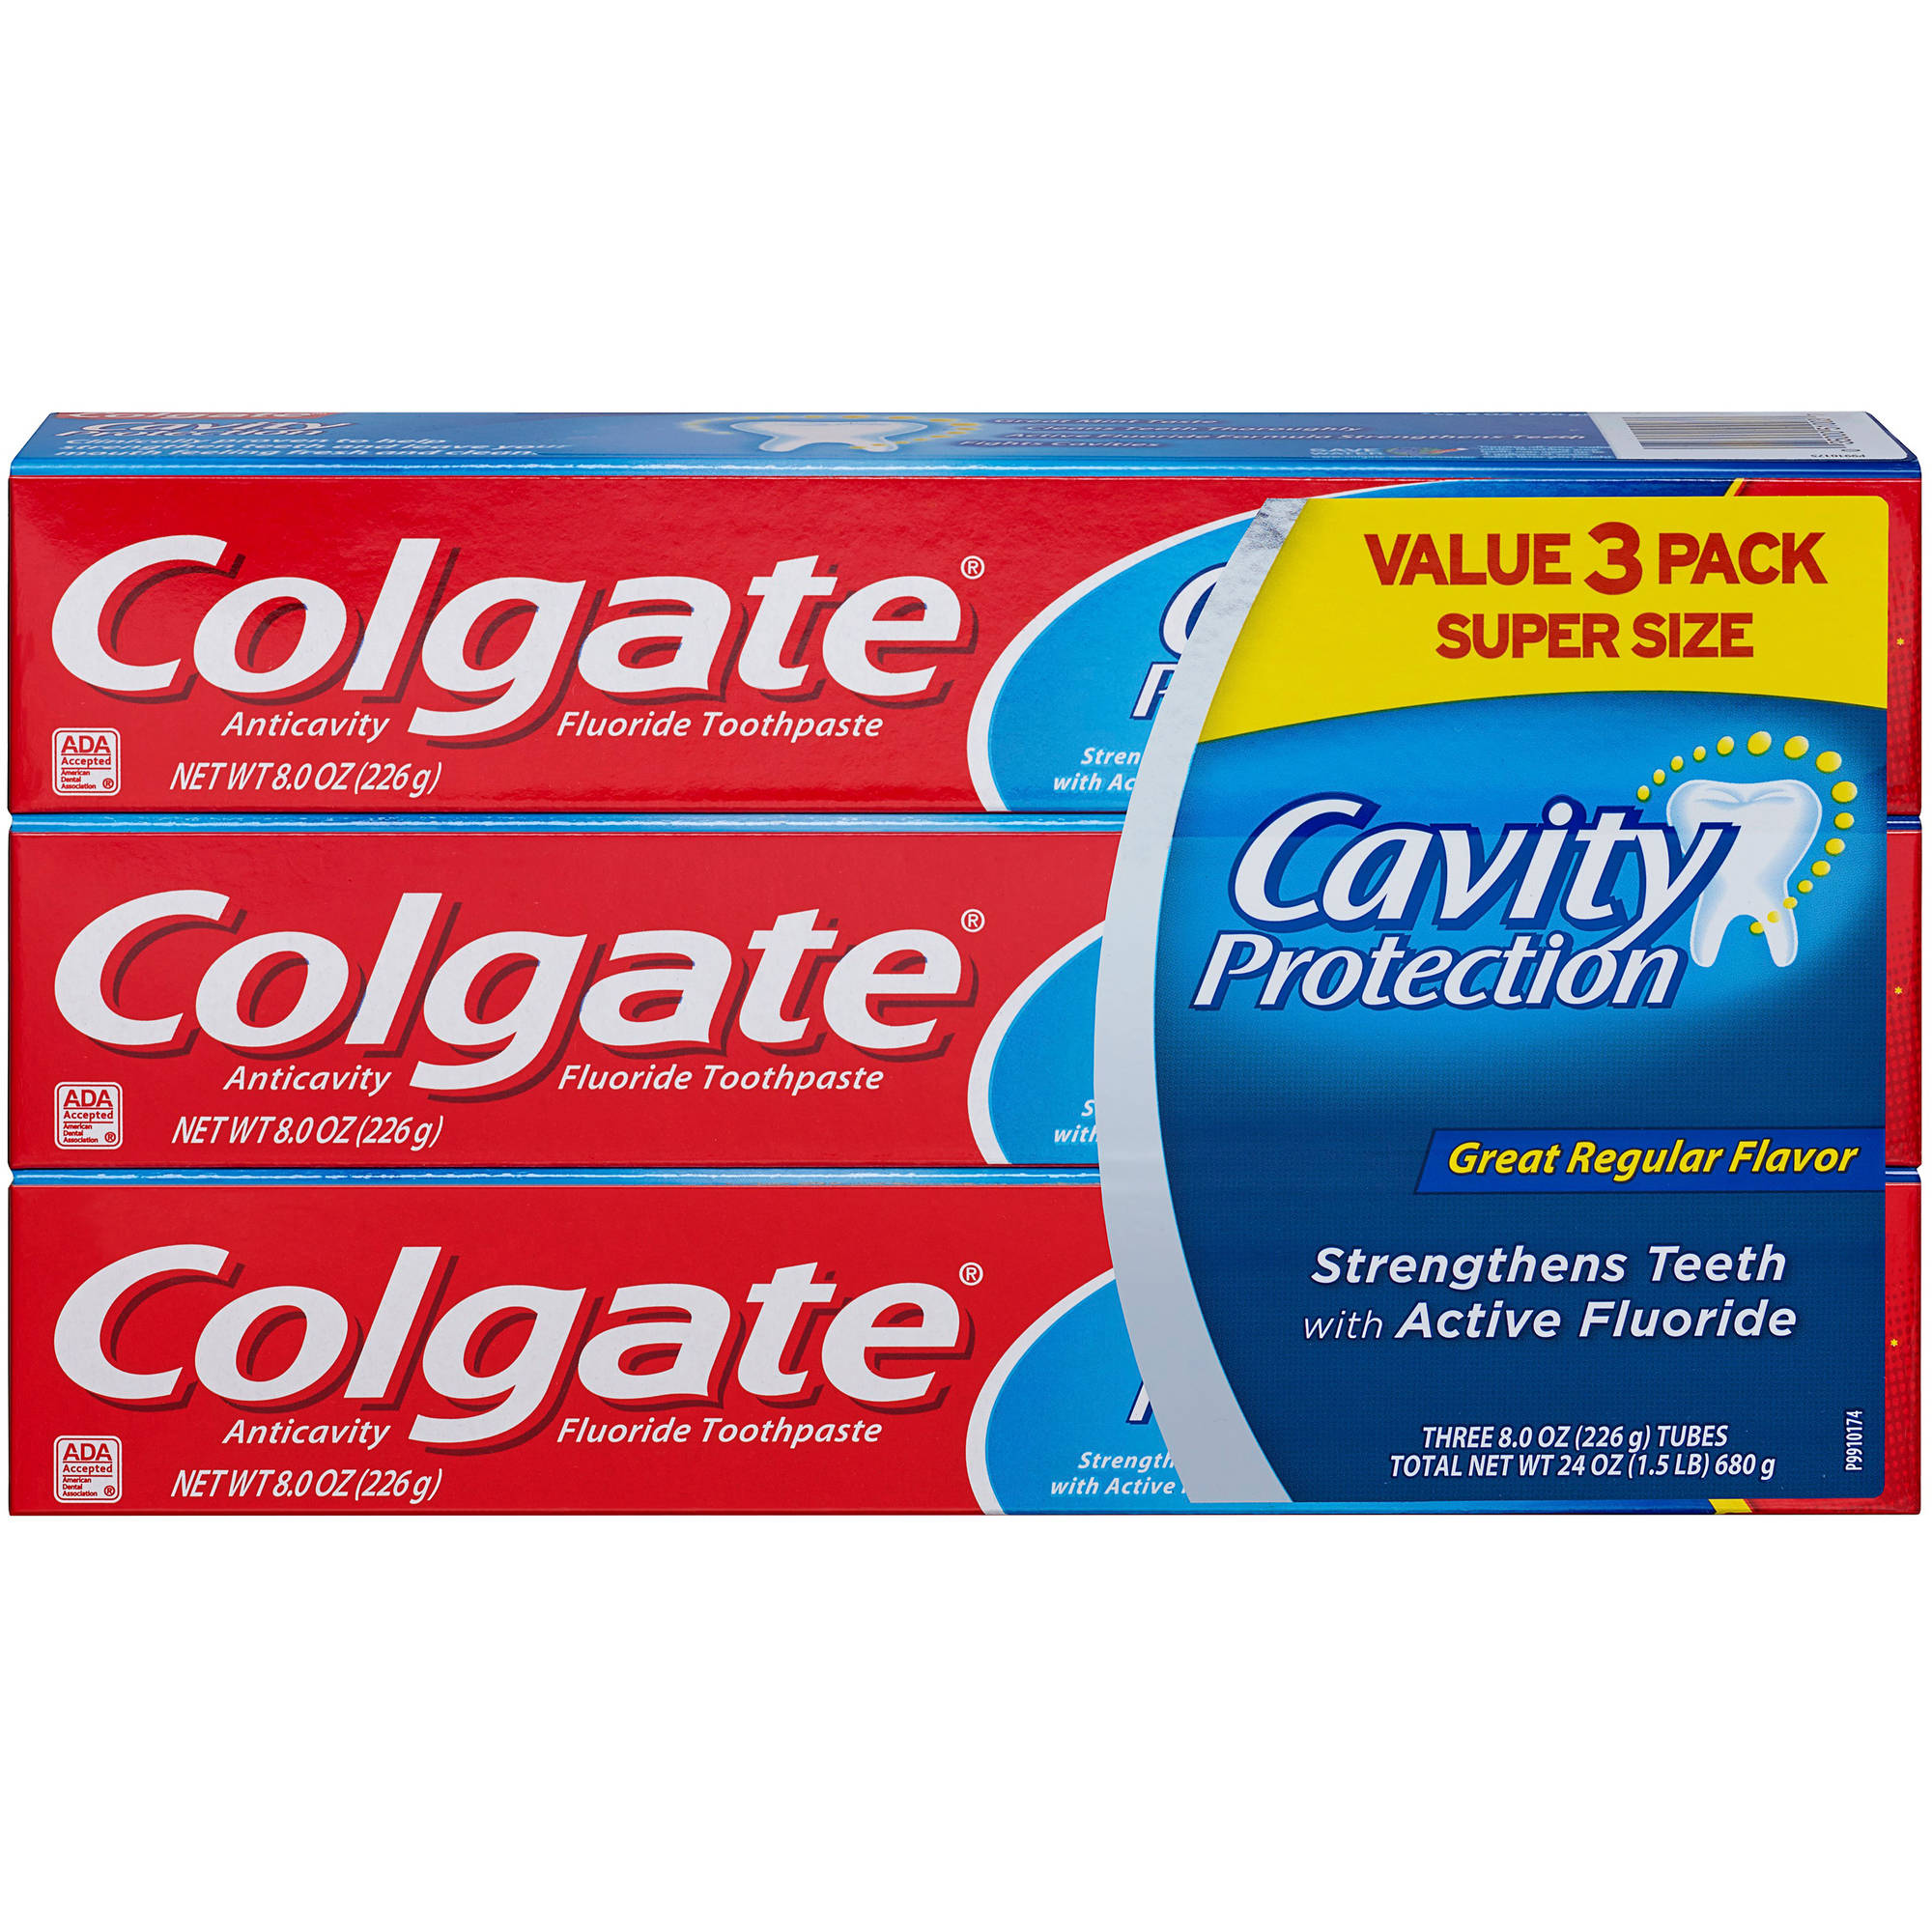 Colgate Cavity Protection Mint Anticavity Fluoride Toothpaste, 3 count, 8 oz